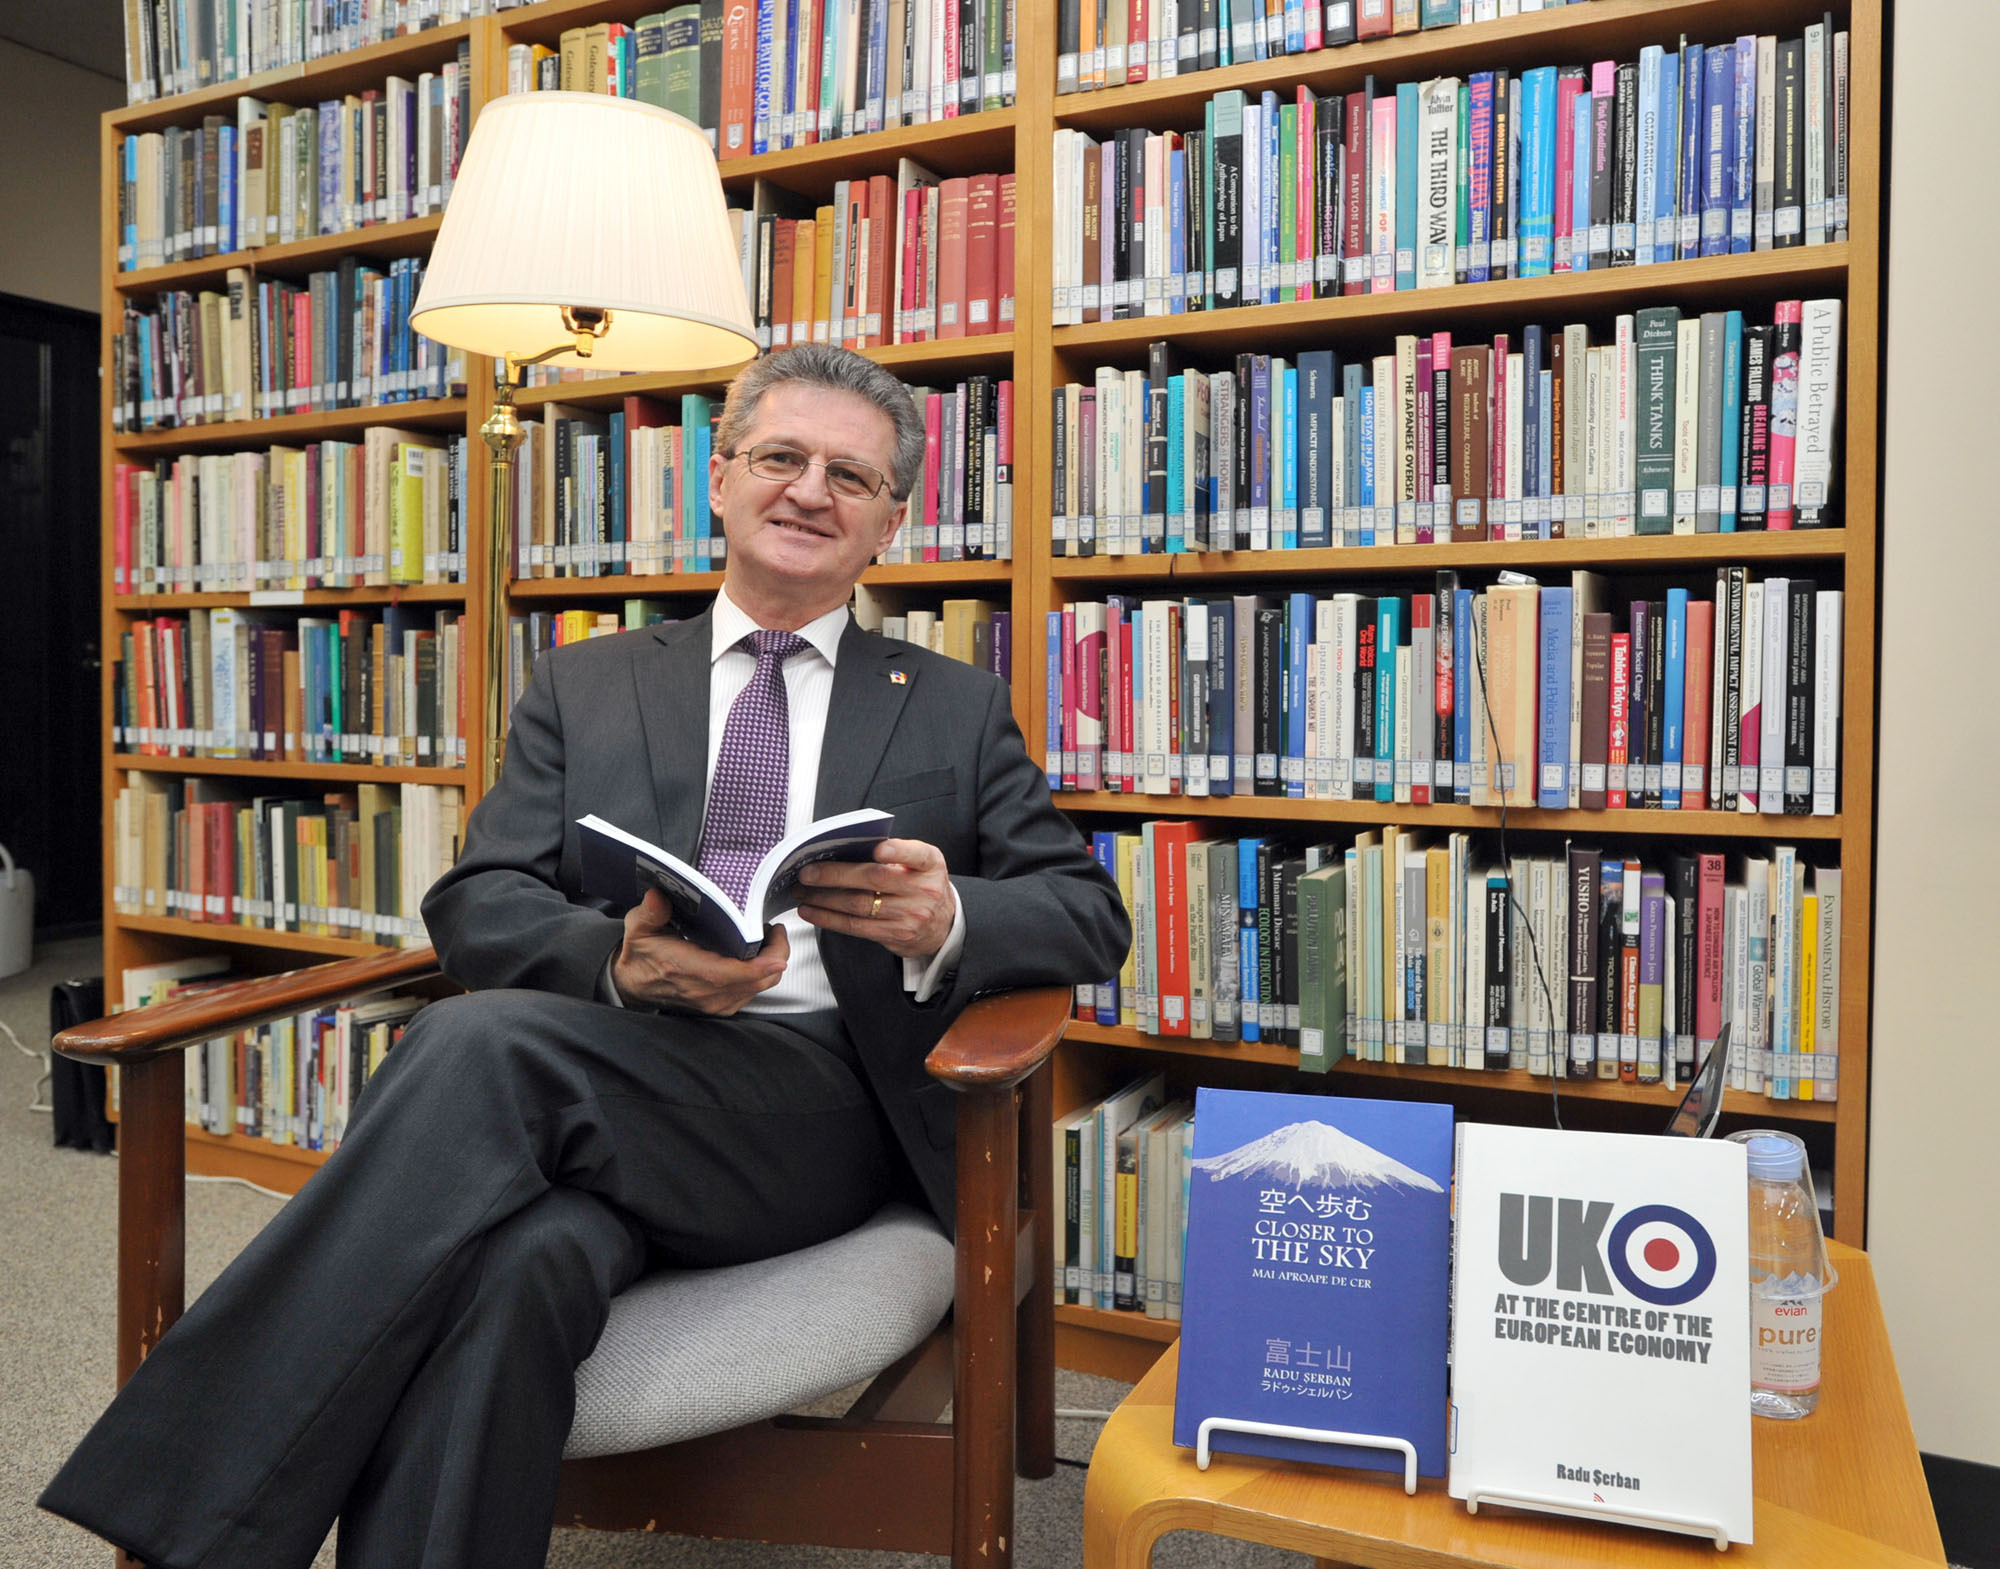 """Romanian Ambassador Radu Serban, at a reading for his book, """"Closer to the Sky"""" or """"Sora e ayumu,"""" which is about his climbing of Mt. Fuji in July, 2014. The book is not only a story of his climb, but also a glimpse into his philosophy of life, beliefs, and experiences, as well as the contrasts between Japan and Romania, at International House Library in Tokyo on Feb. 19. 